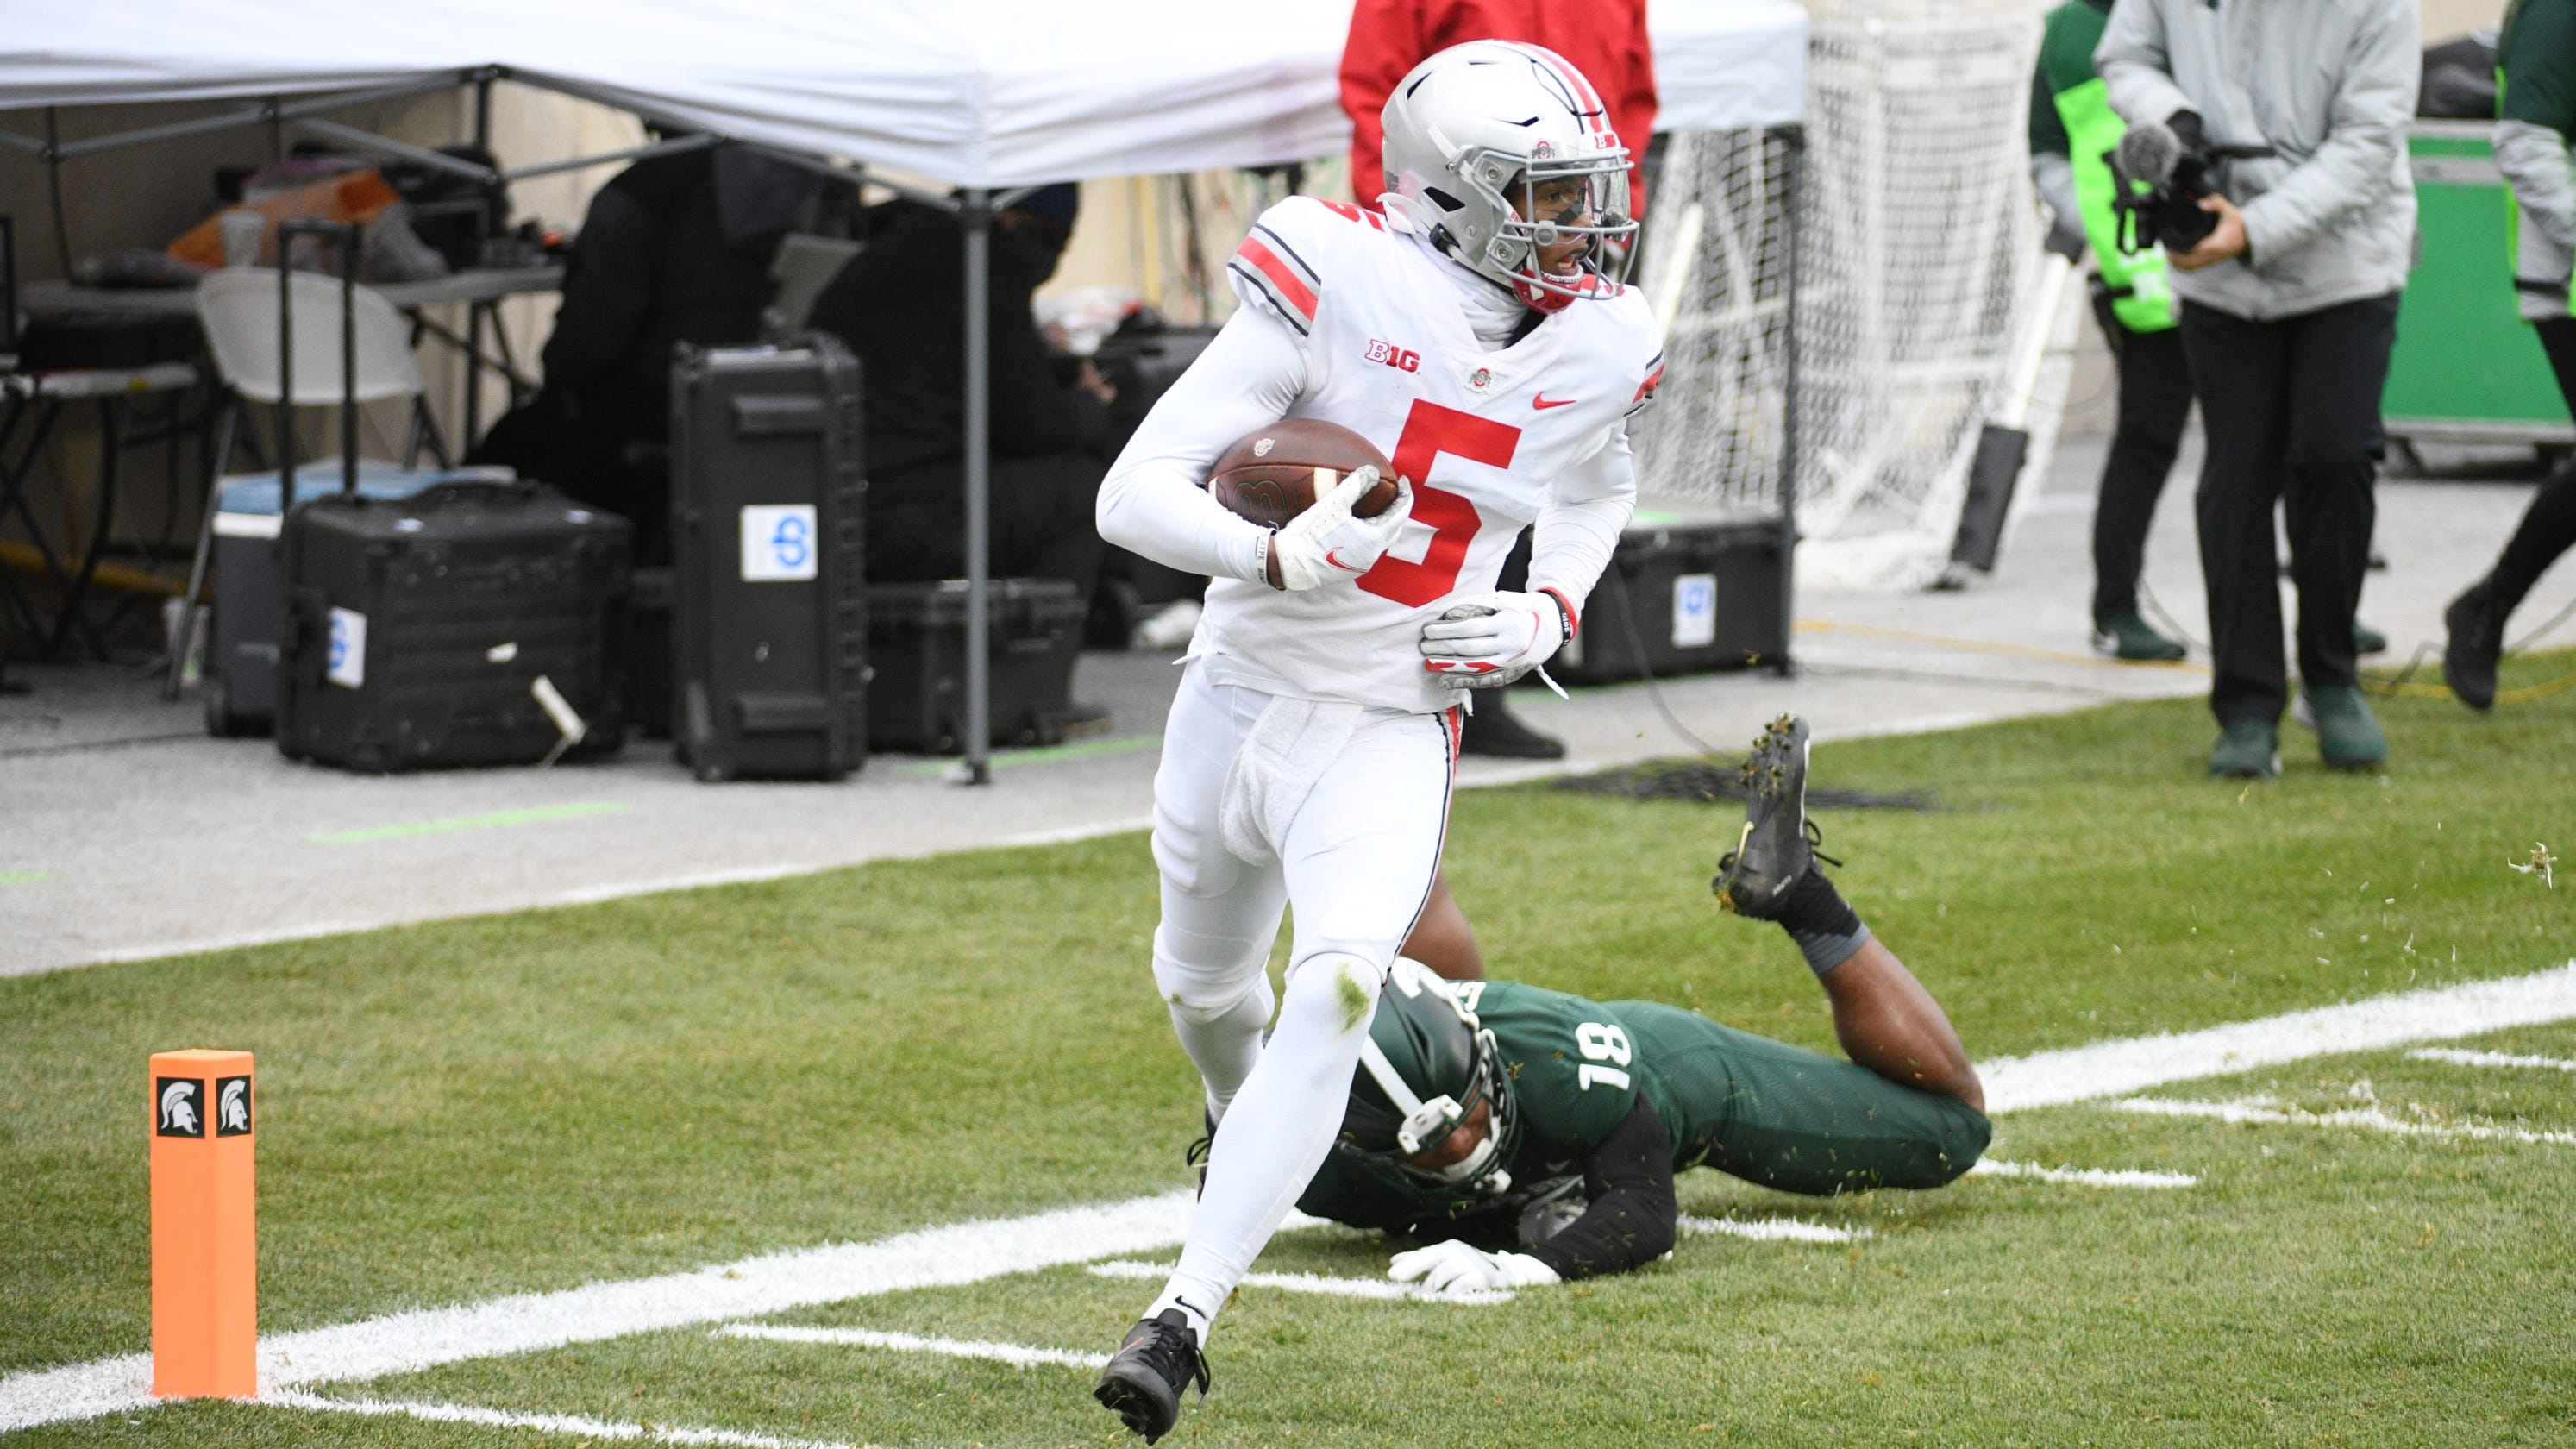 College football winners and losers from Week 14: Ohio State, Texas A&M stay on playoff track